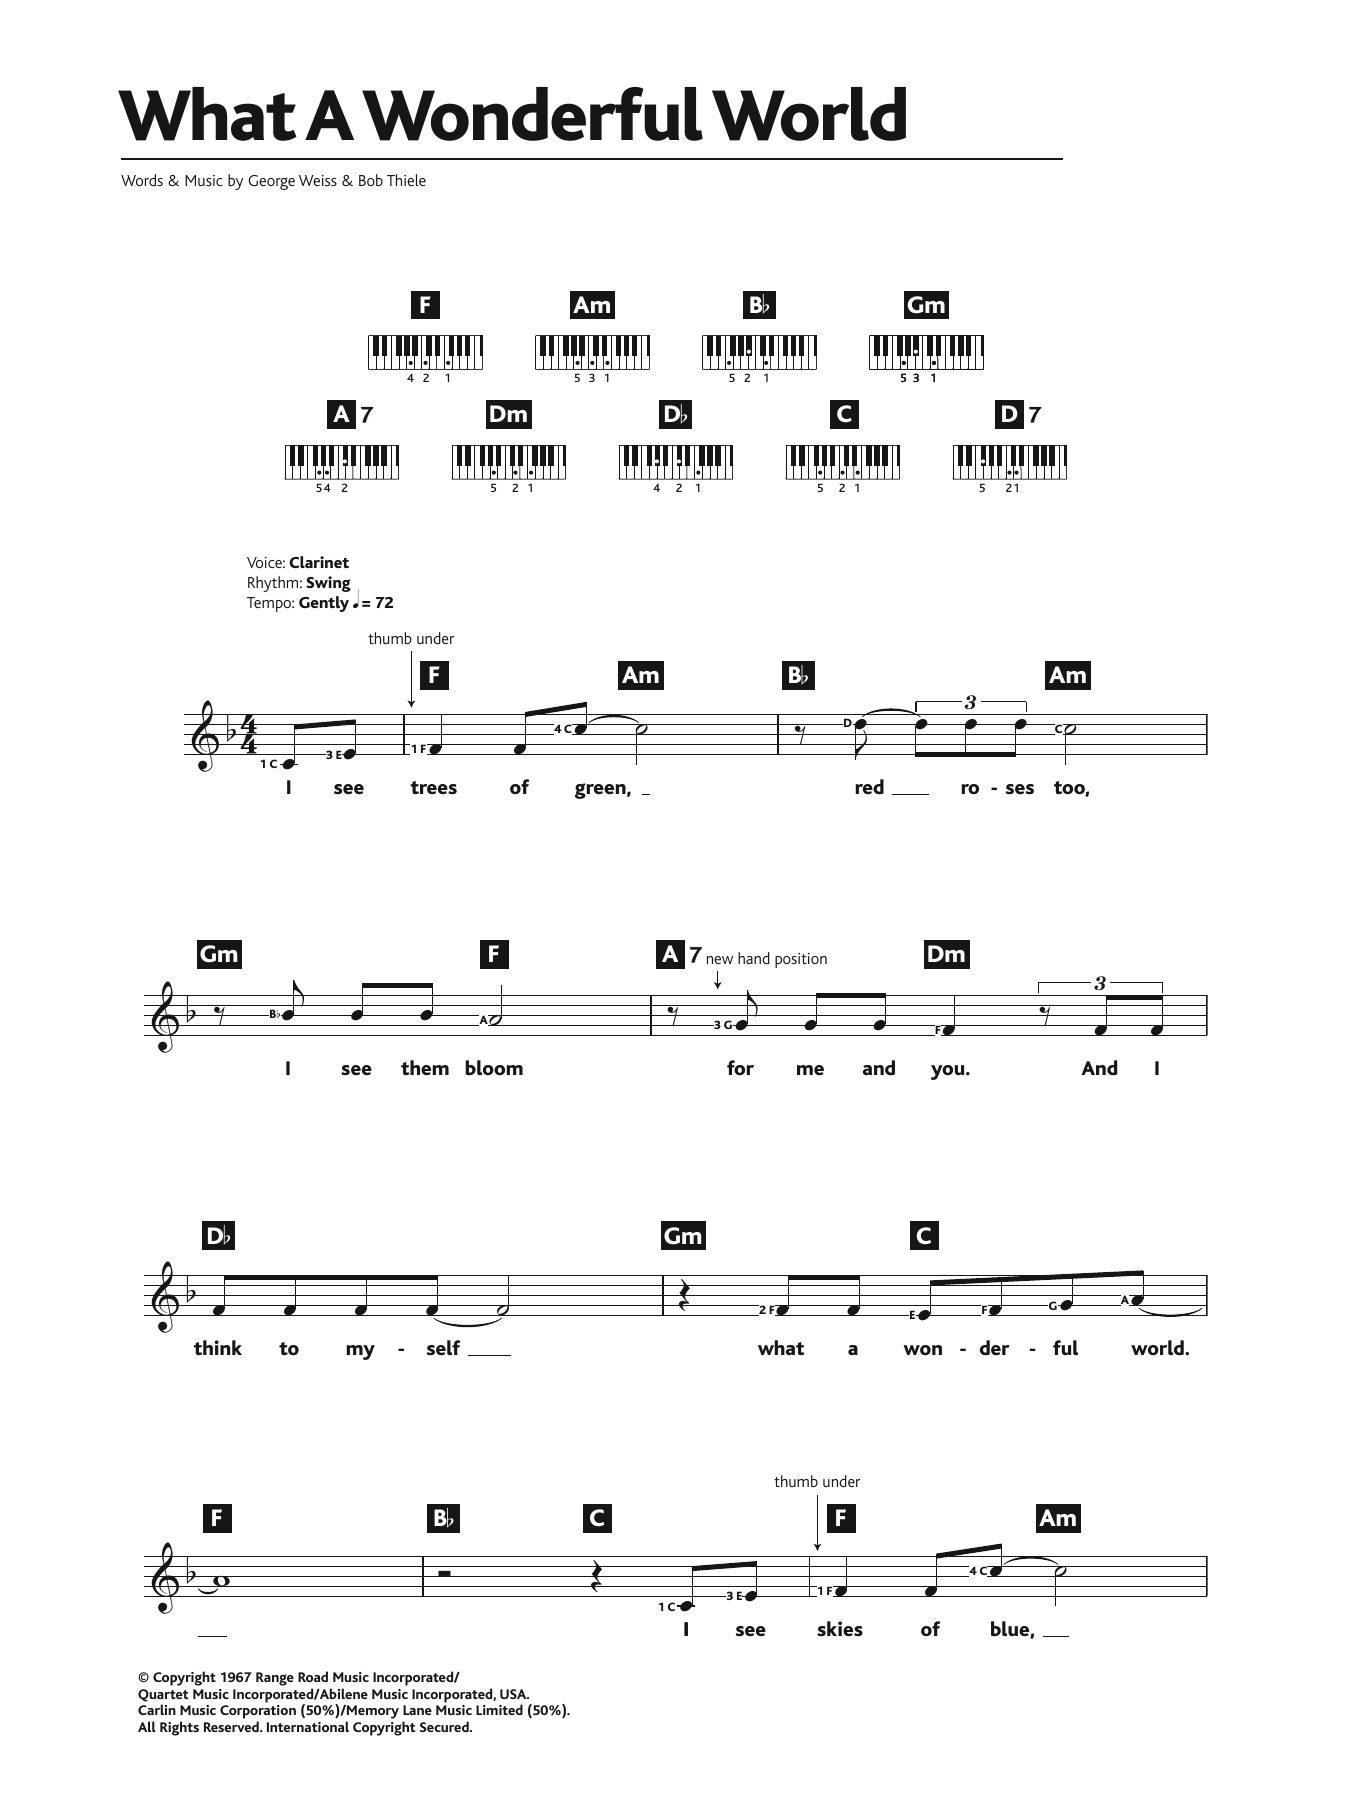 Chords for somewhere over the rainbow guitar